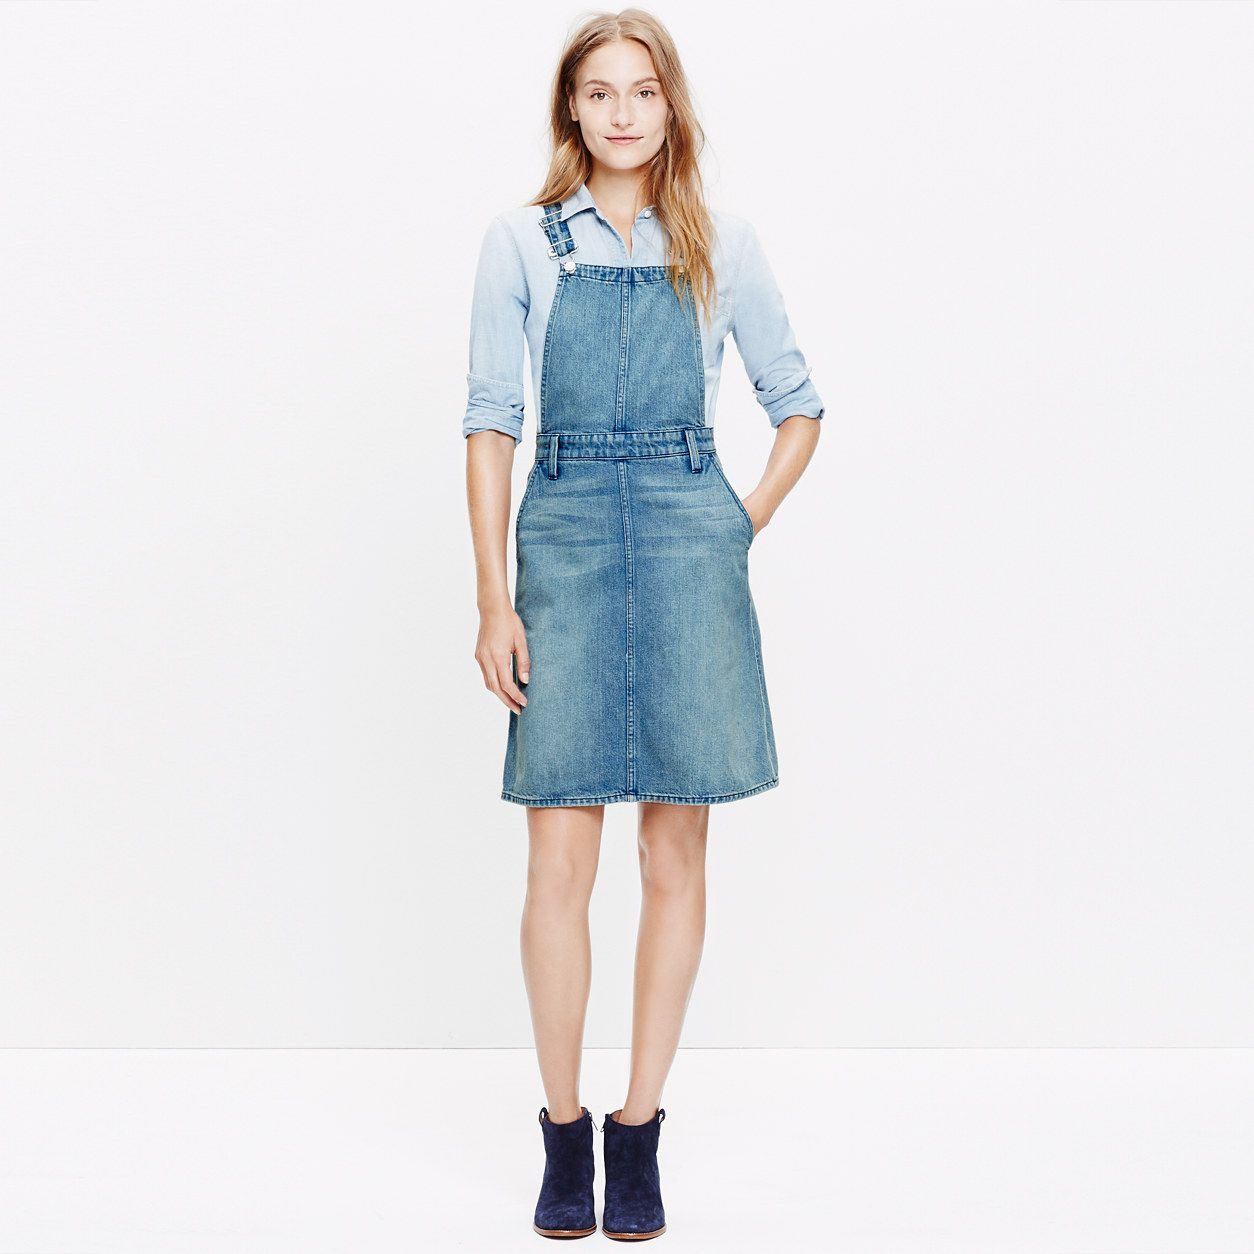 Denim Jumper Dress  Dresses U0026 Skirts | Madewell | Blue Jean Baby | Pinterest | Denim Jumper ...